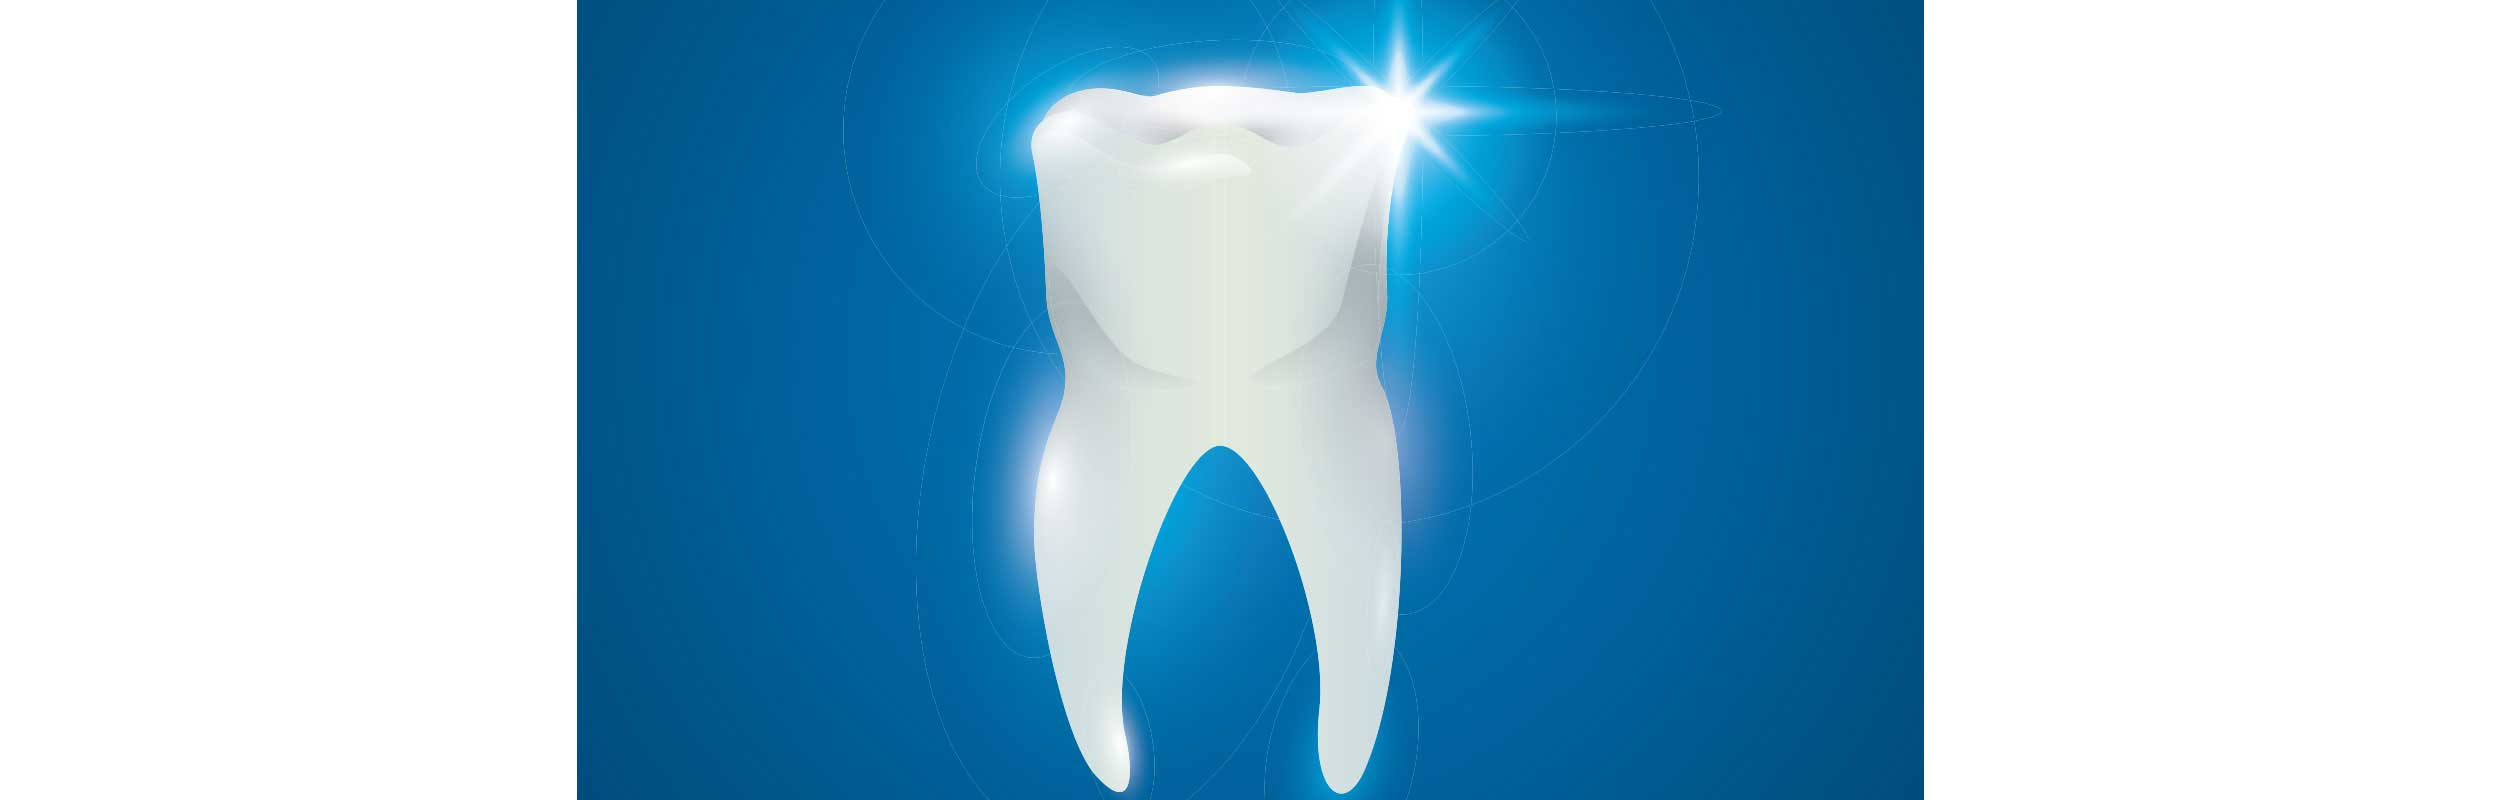 A New Way to Treat Gum Disease - Nashville, TN